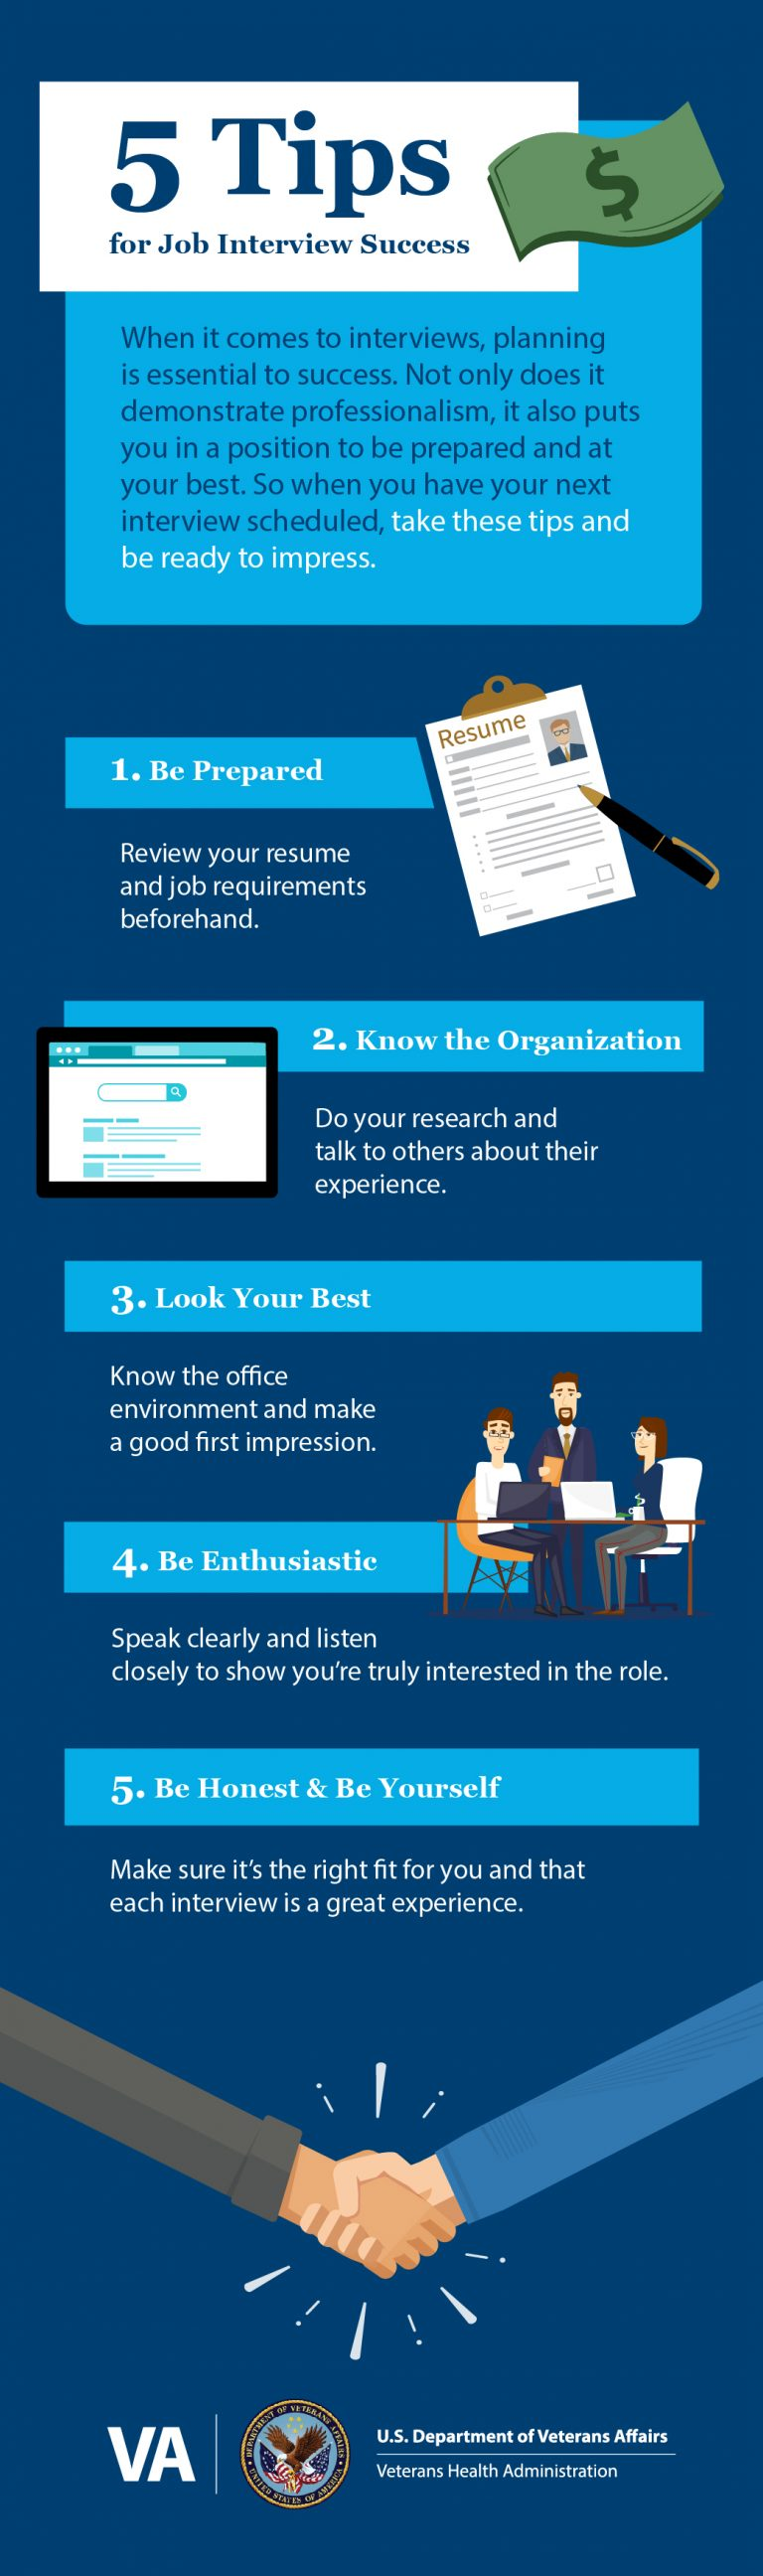 10 tips for job interview success